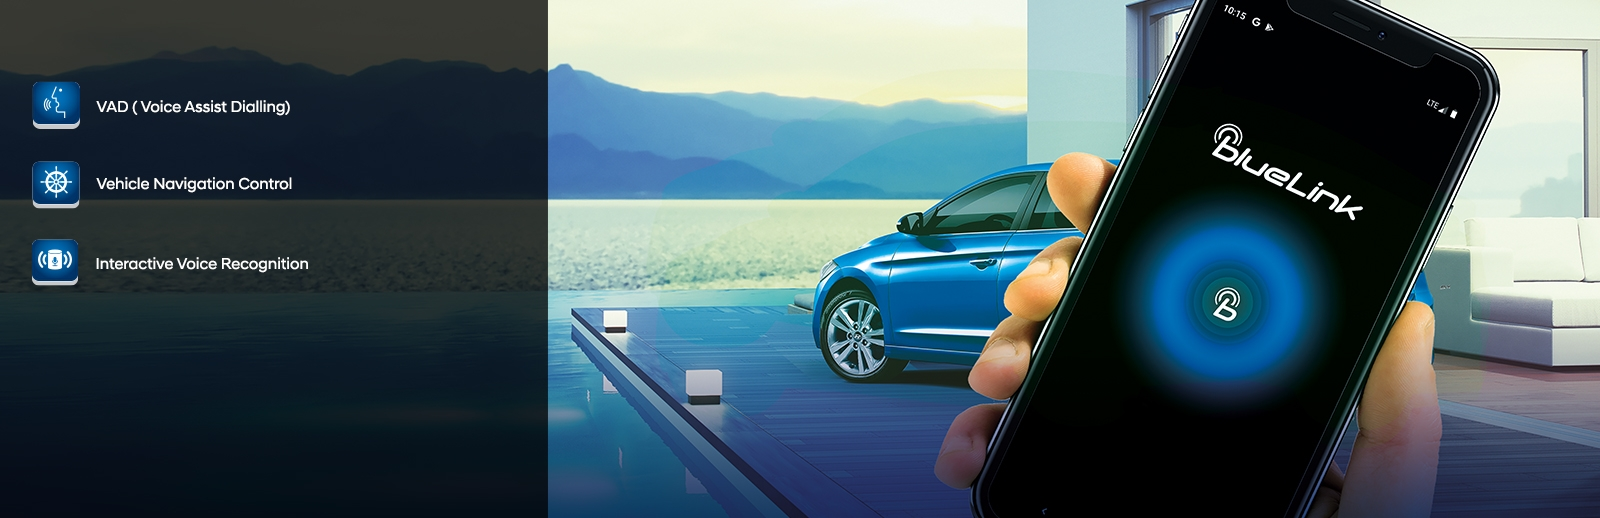 Hyundai Blue Link Technology: All You Need To Know - Nepal Drives